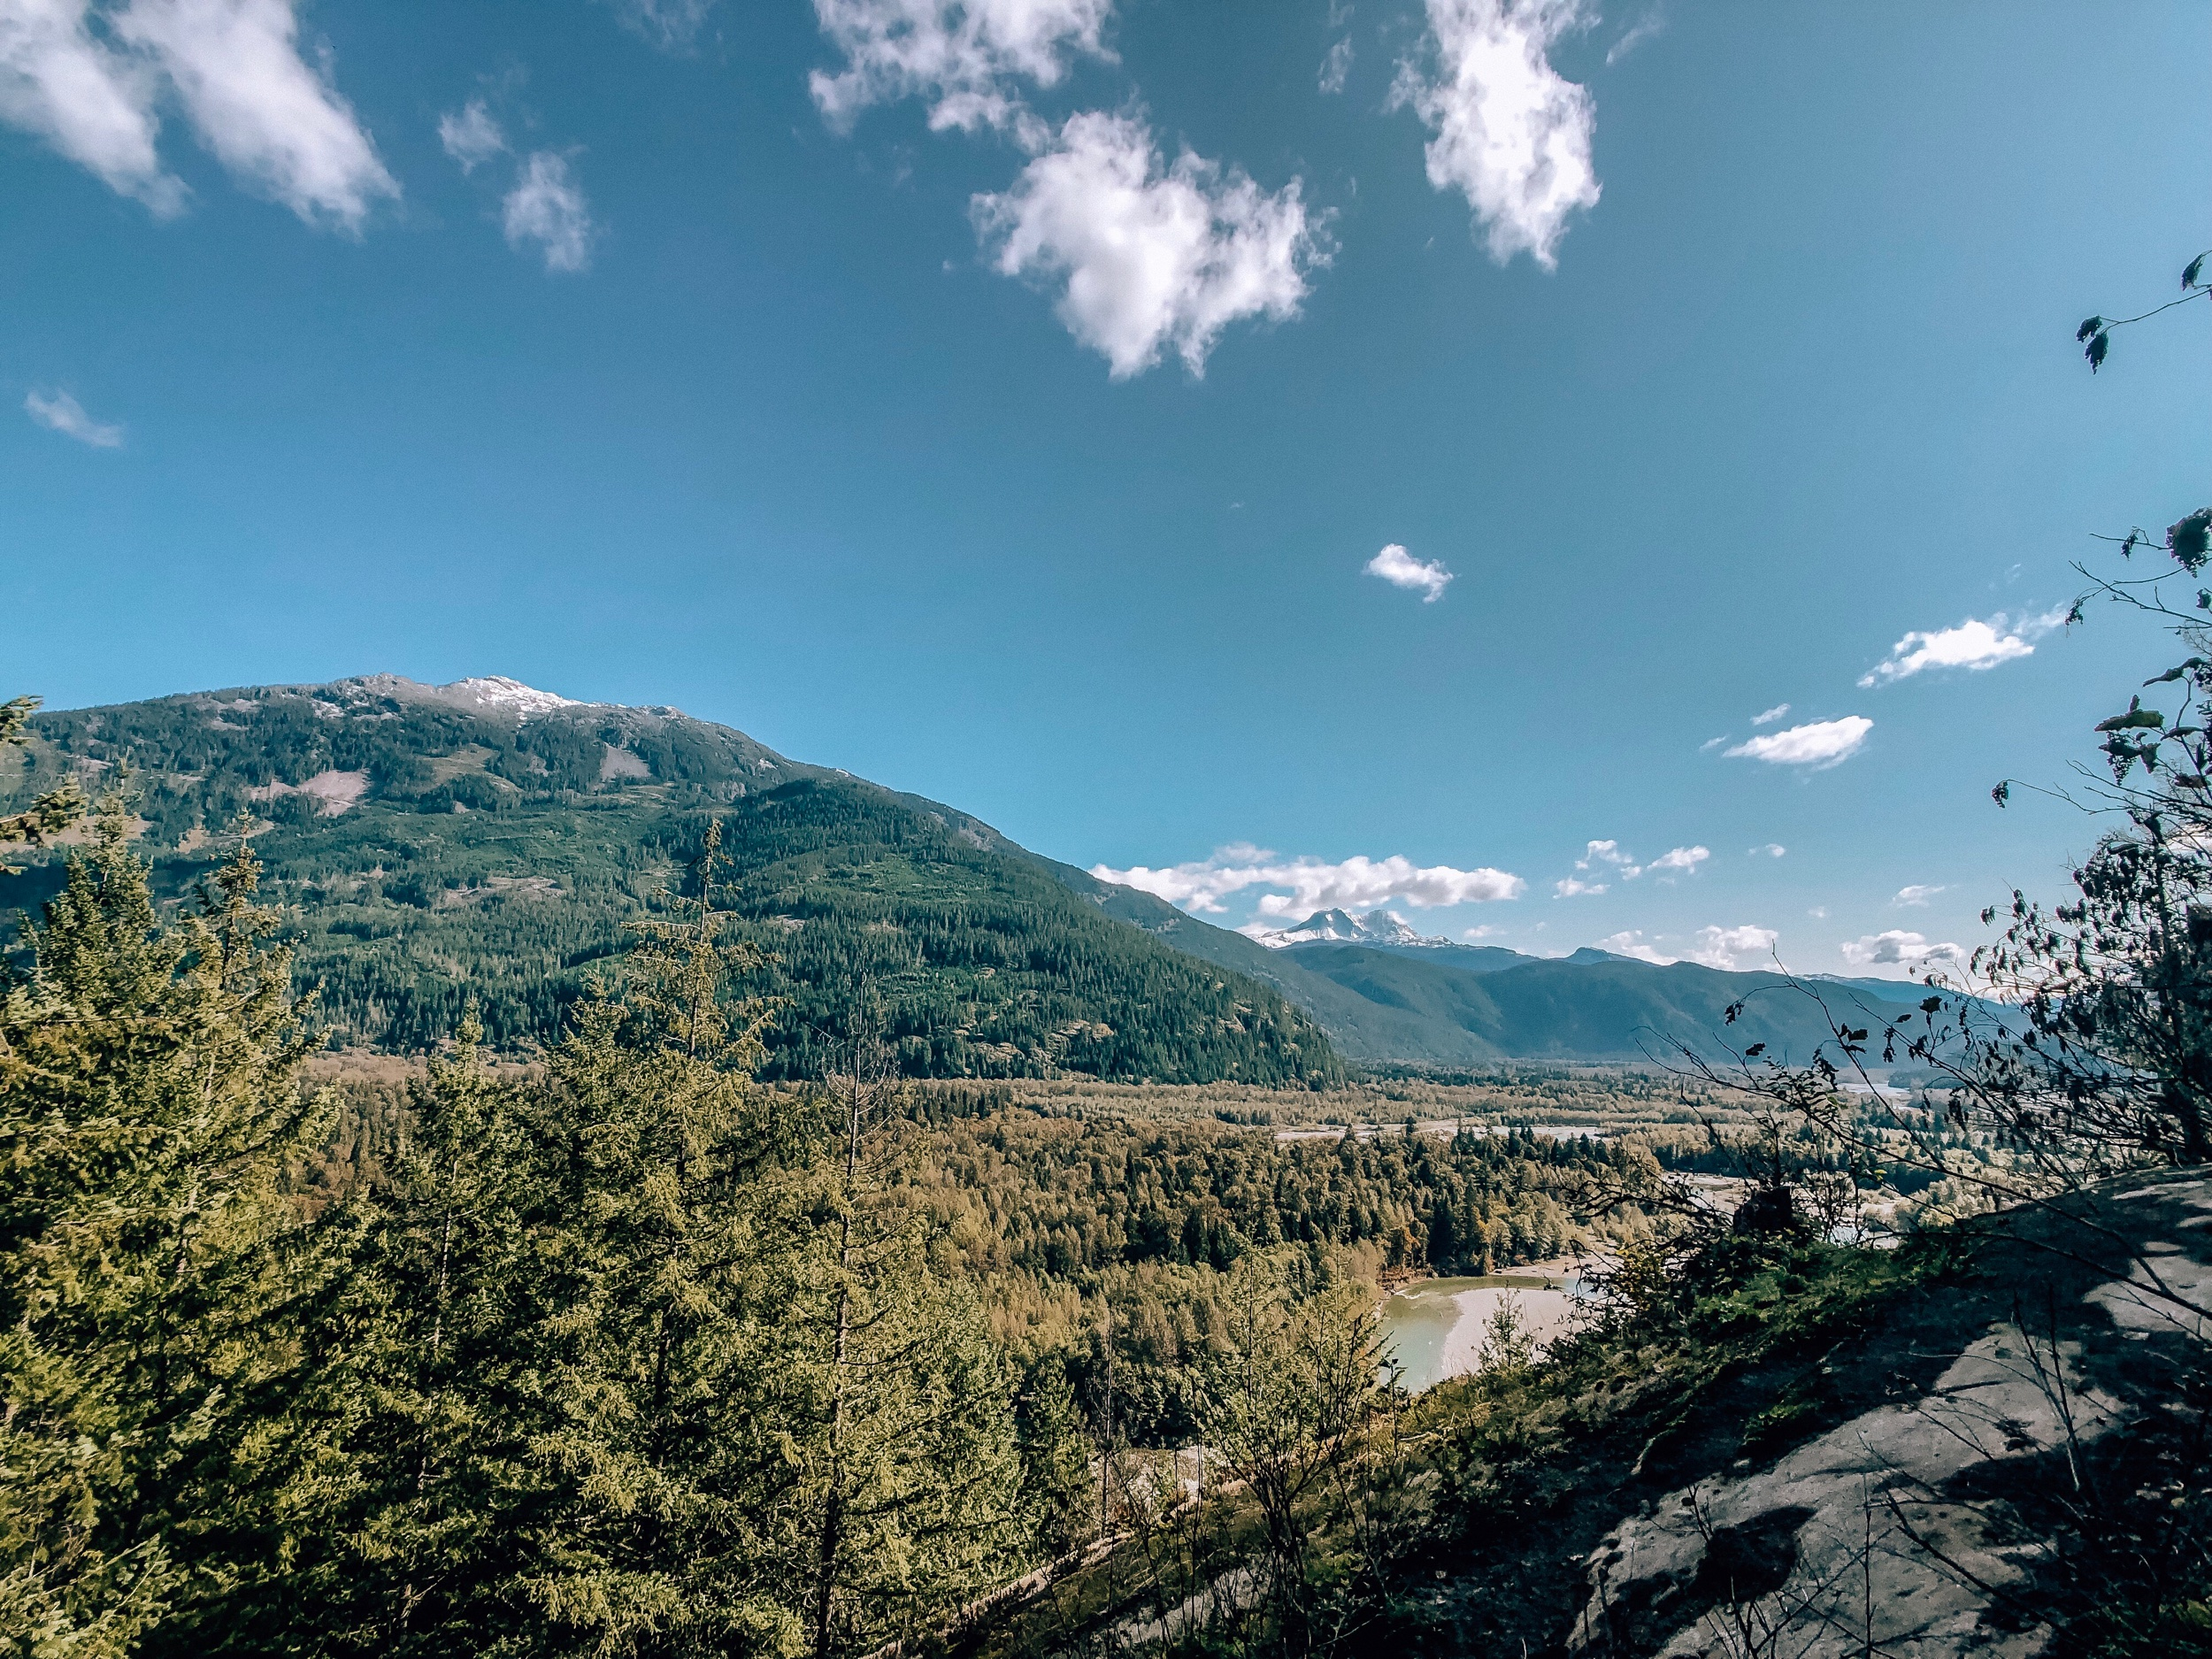 Crooked Falls Hike in Squamish BC Canada